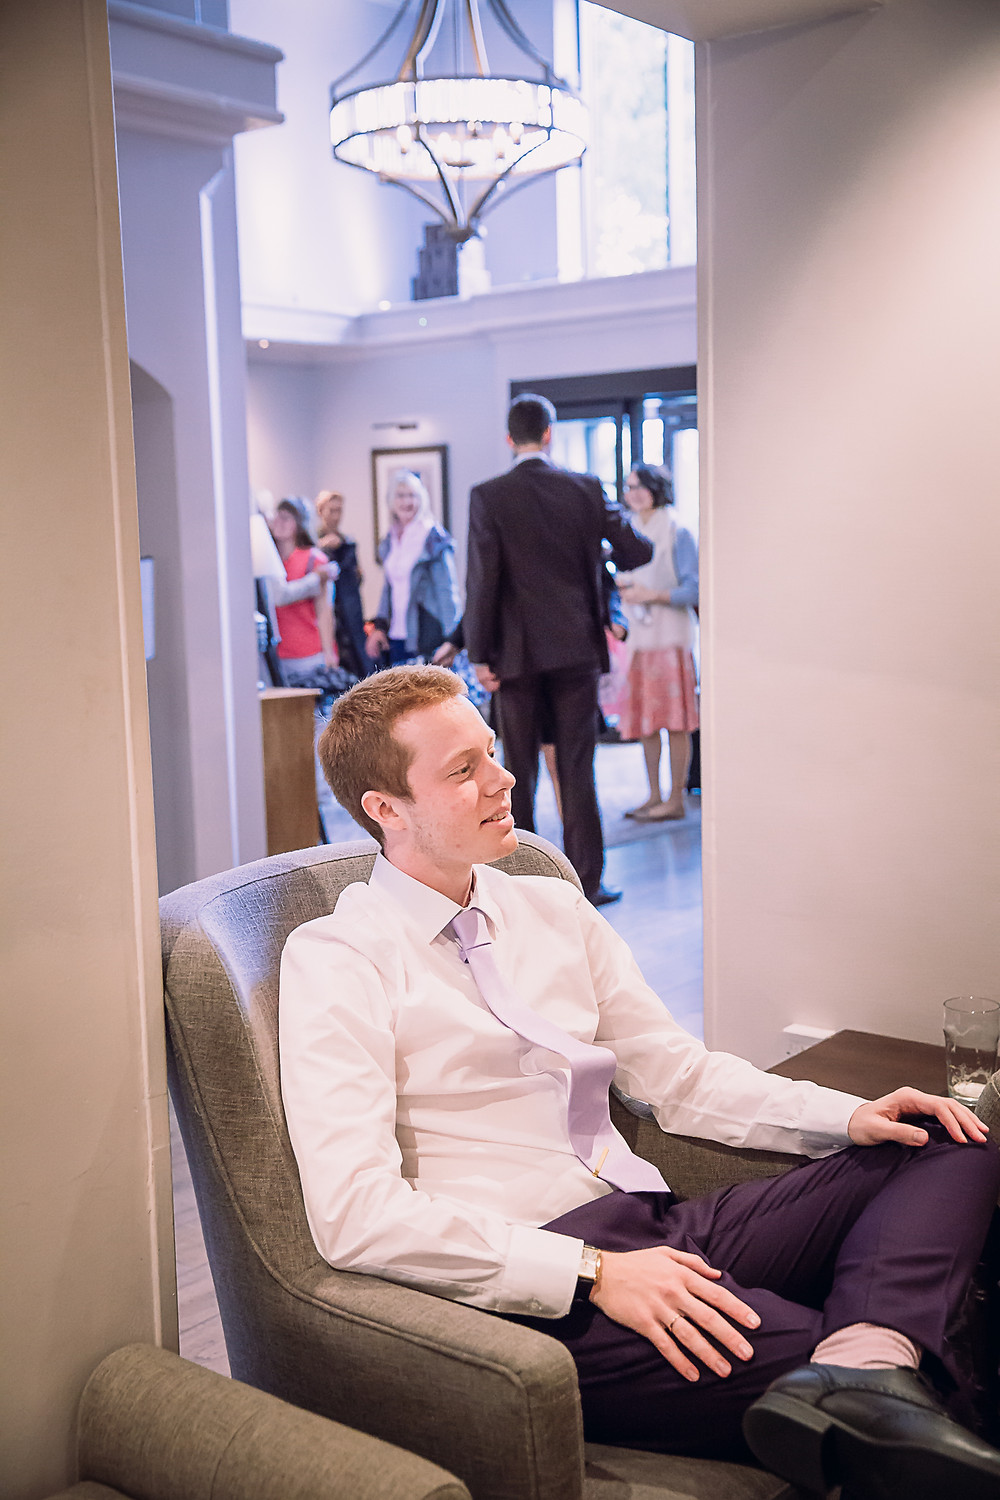 A groom sitting in a chair in a reception of a hotel, his bride has arrived behind him and is hugging a family member